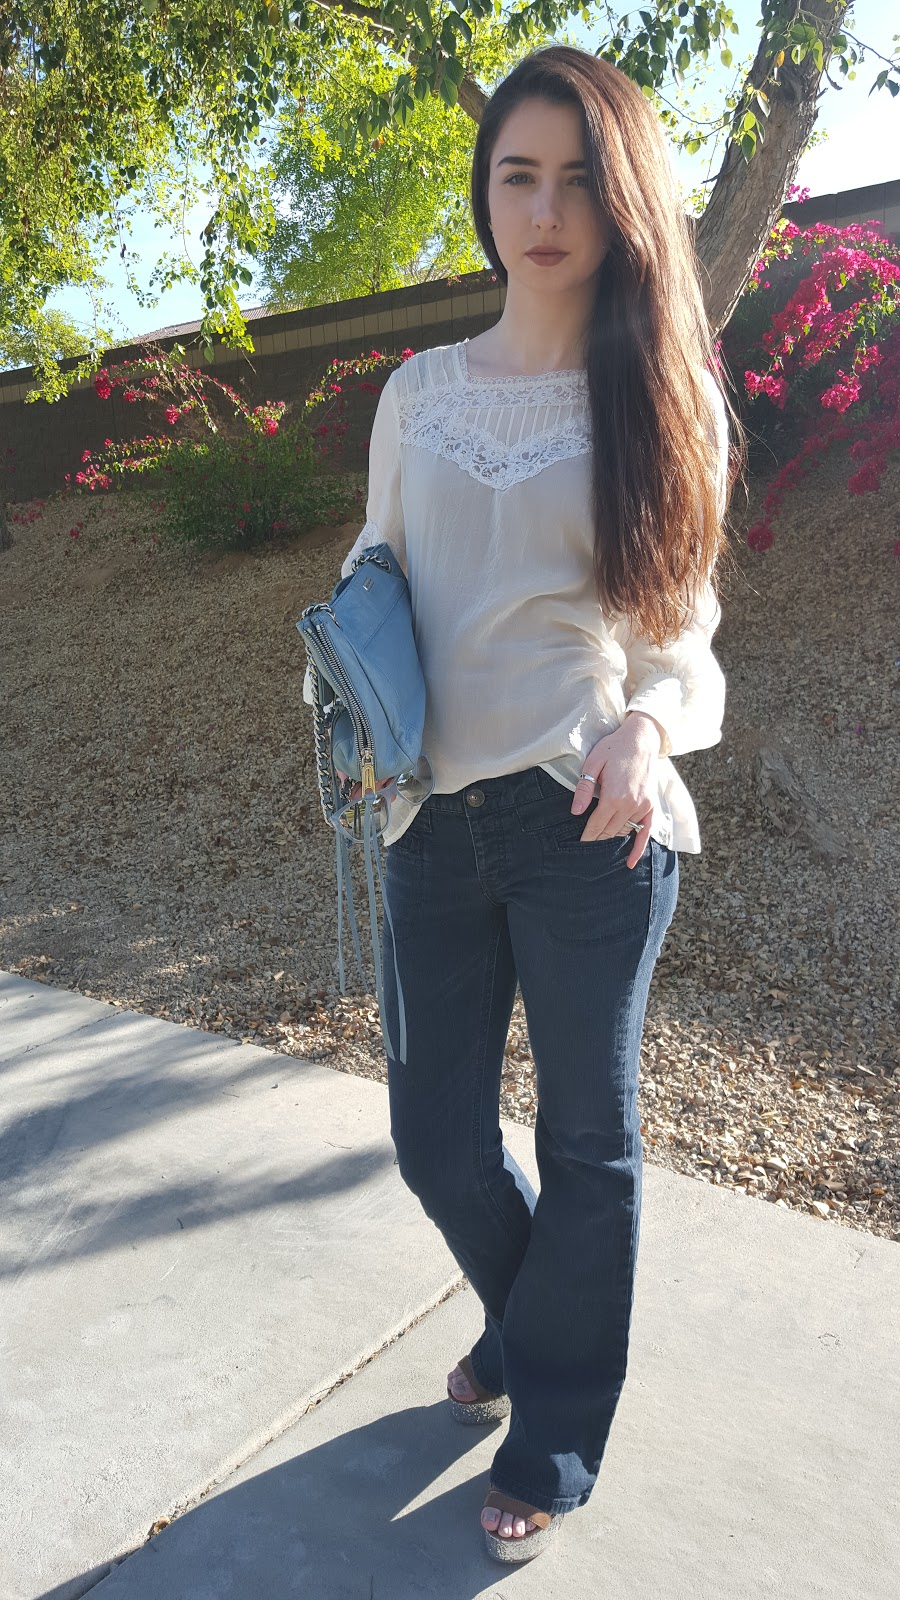 Spring fashion- glam boho look with flare jeans